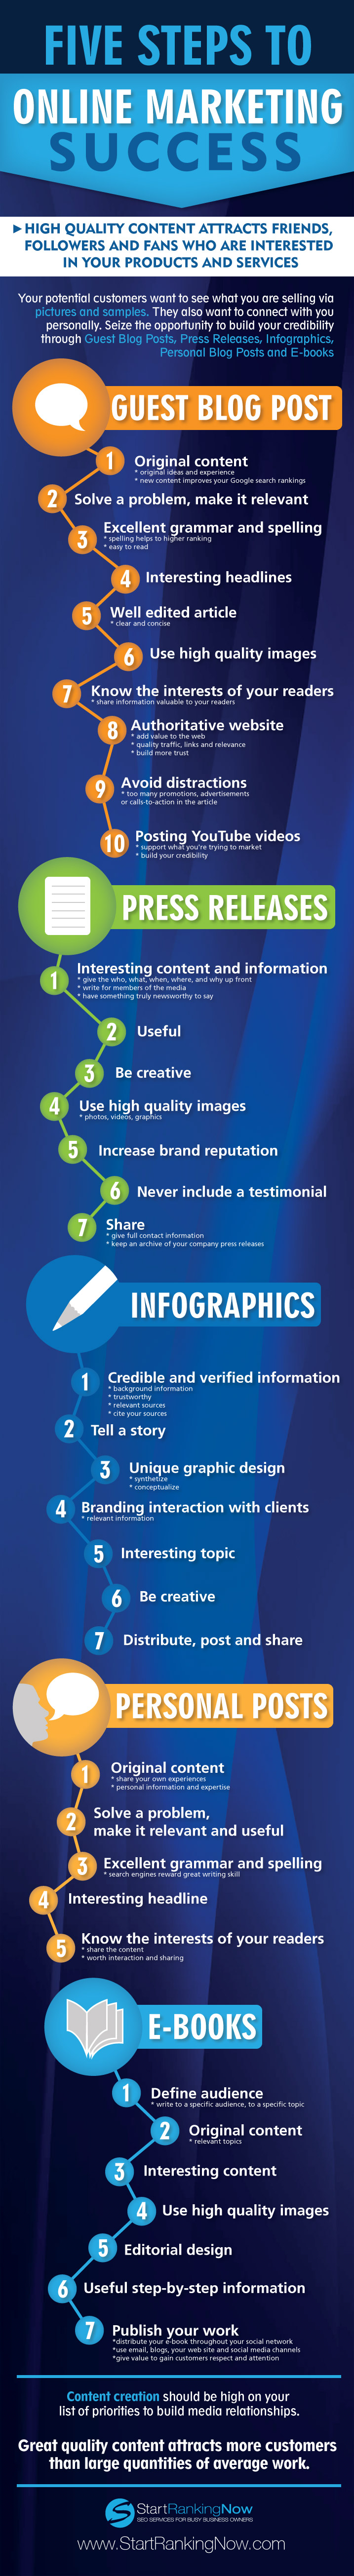 5 Steps to Online Marketing [Infographic]